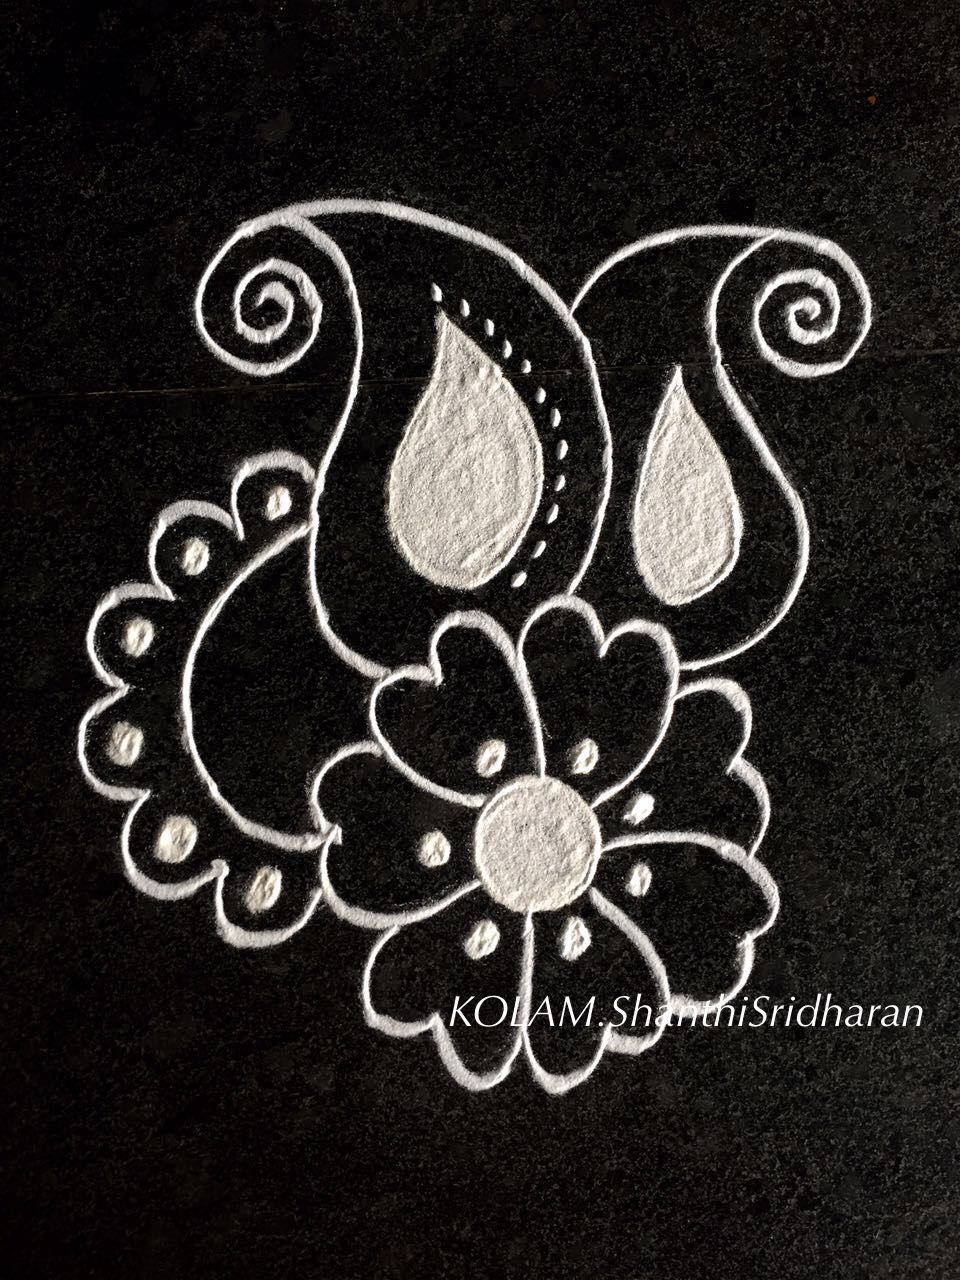 Pin by Shanthi Sridharan.KOLAM on Black and white Kolam